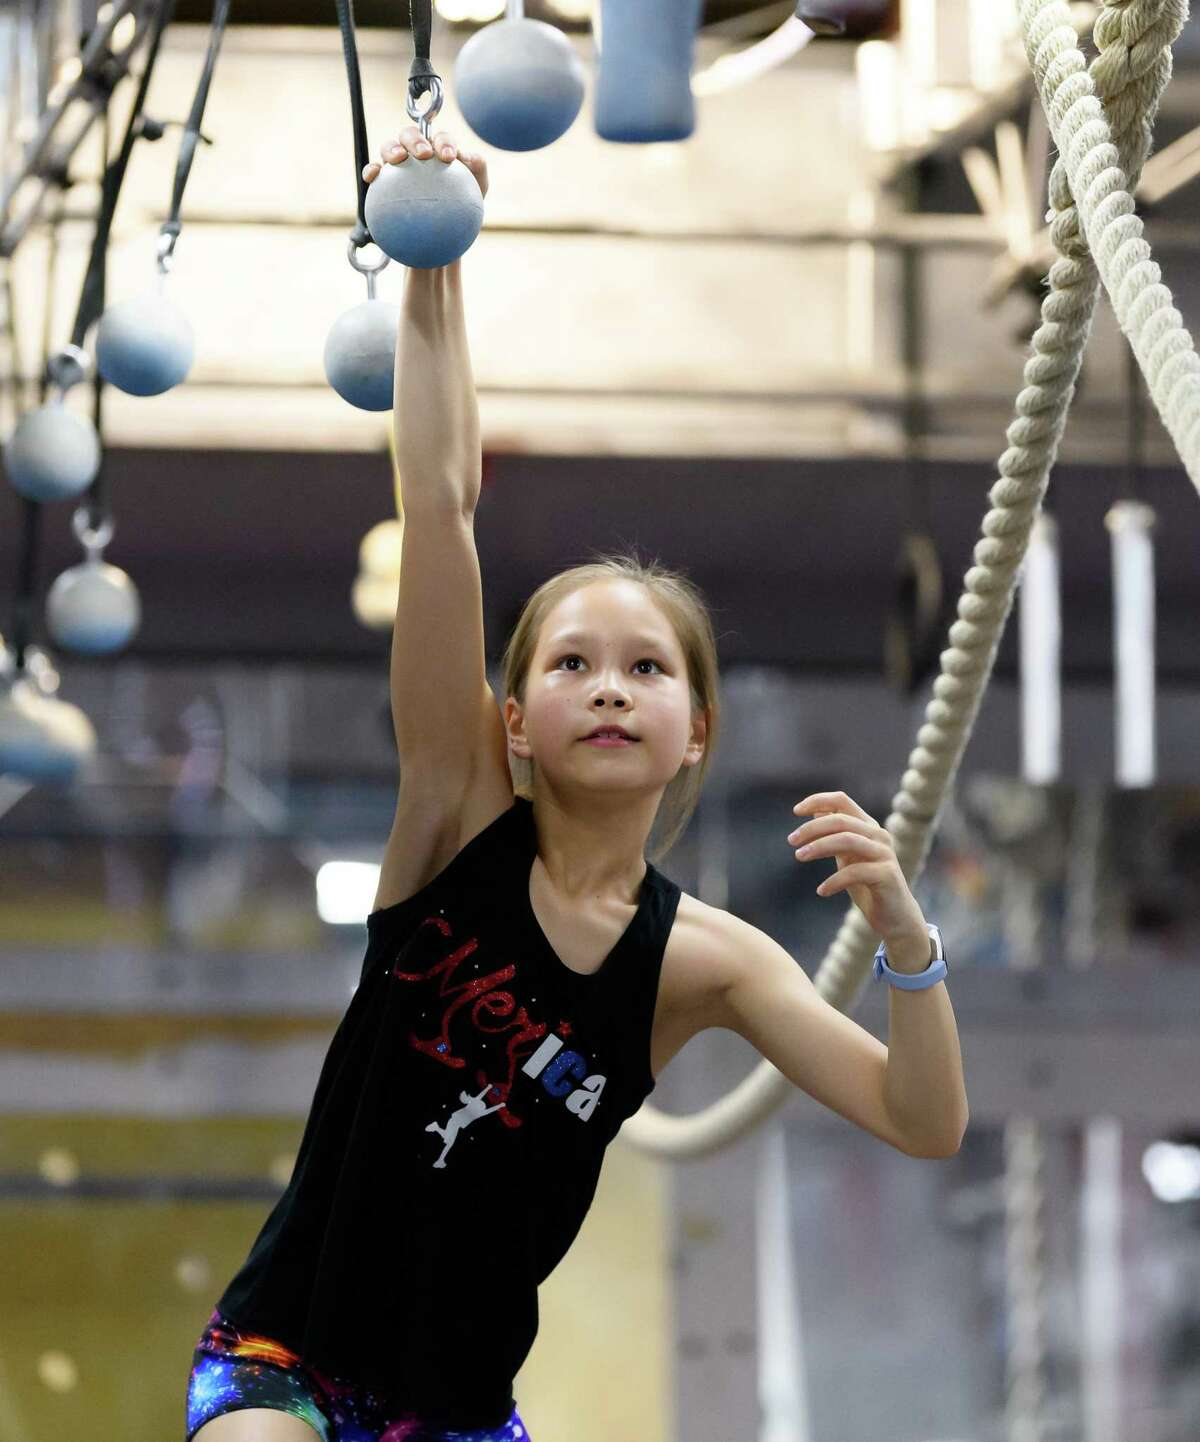 10 year old Meredith Kim works on the Cannon Balls during practice on Friday, March 6, 2020 at Iron Sports in Houston Texas.